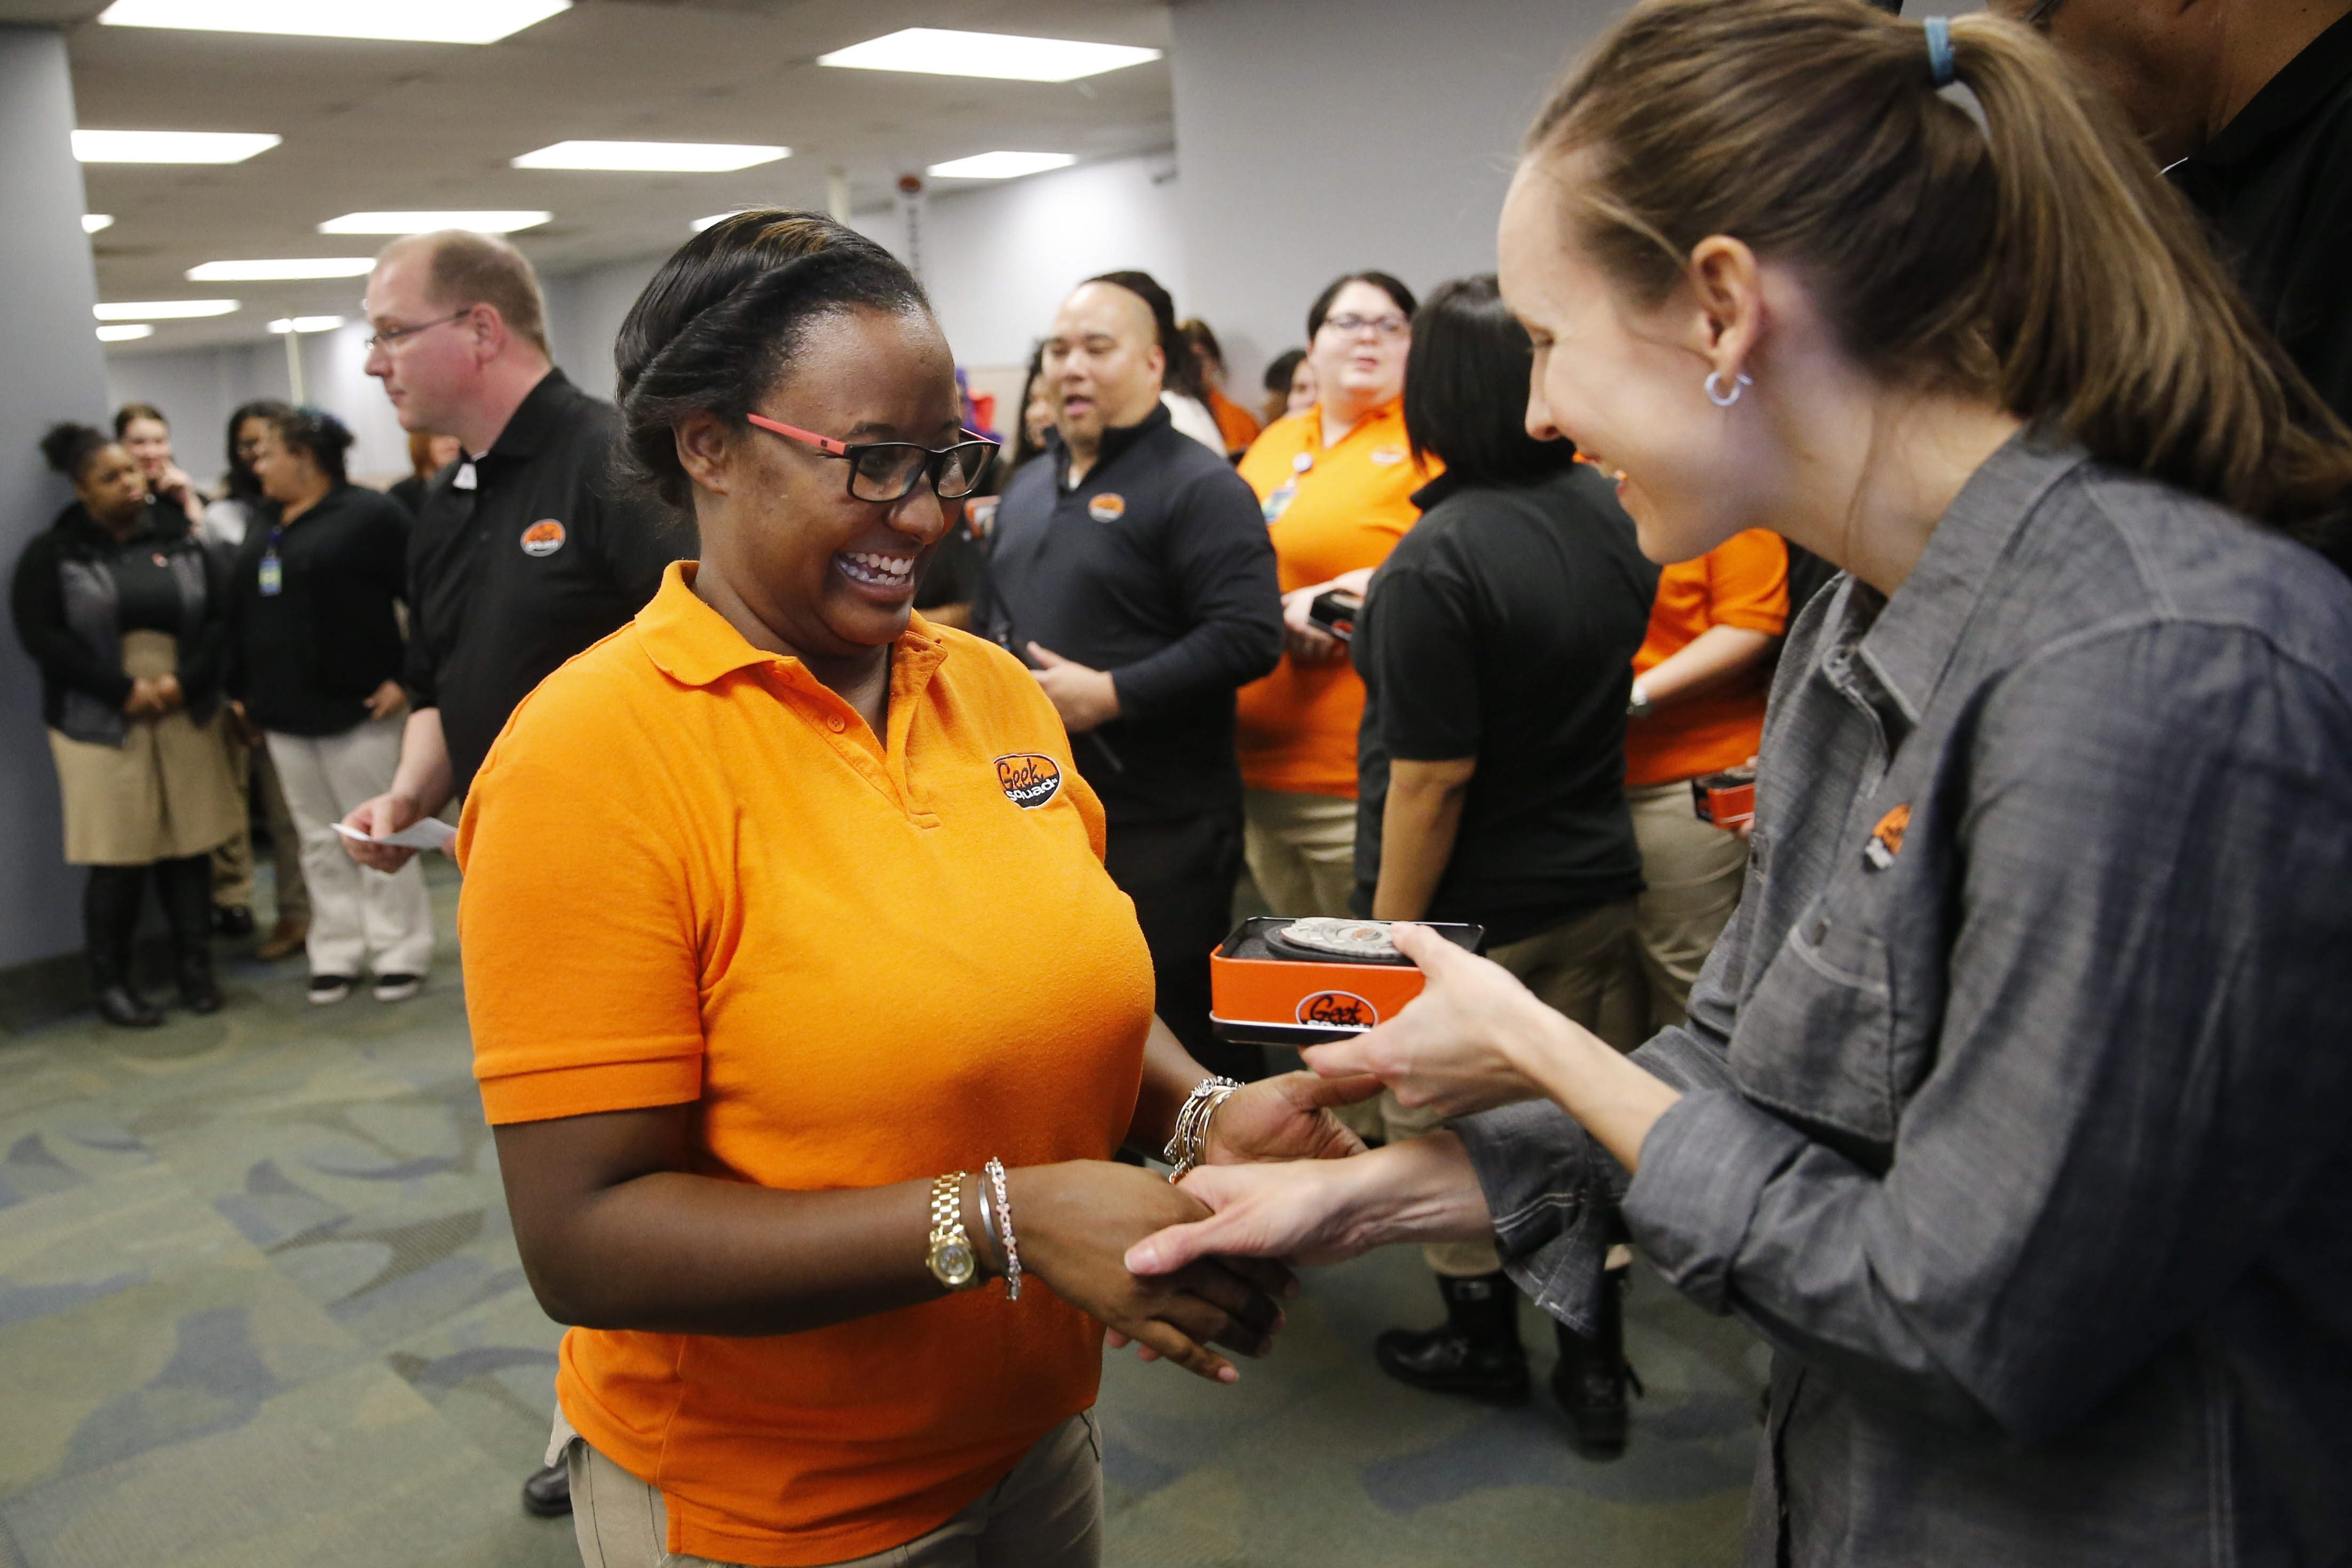 INSTALLS Inc. customer service agent Candance Butler, left, receives her new Geek Squad badge from account manager Jen Hehir during a ceremony Wednesday.